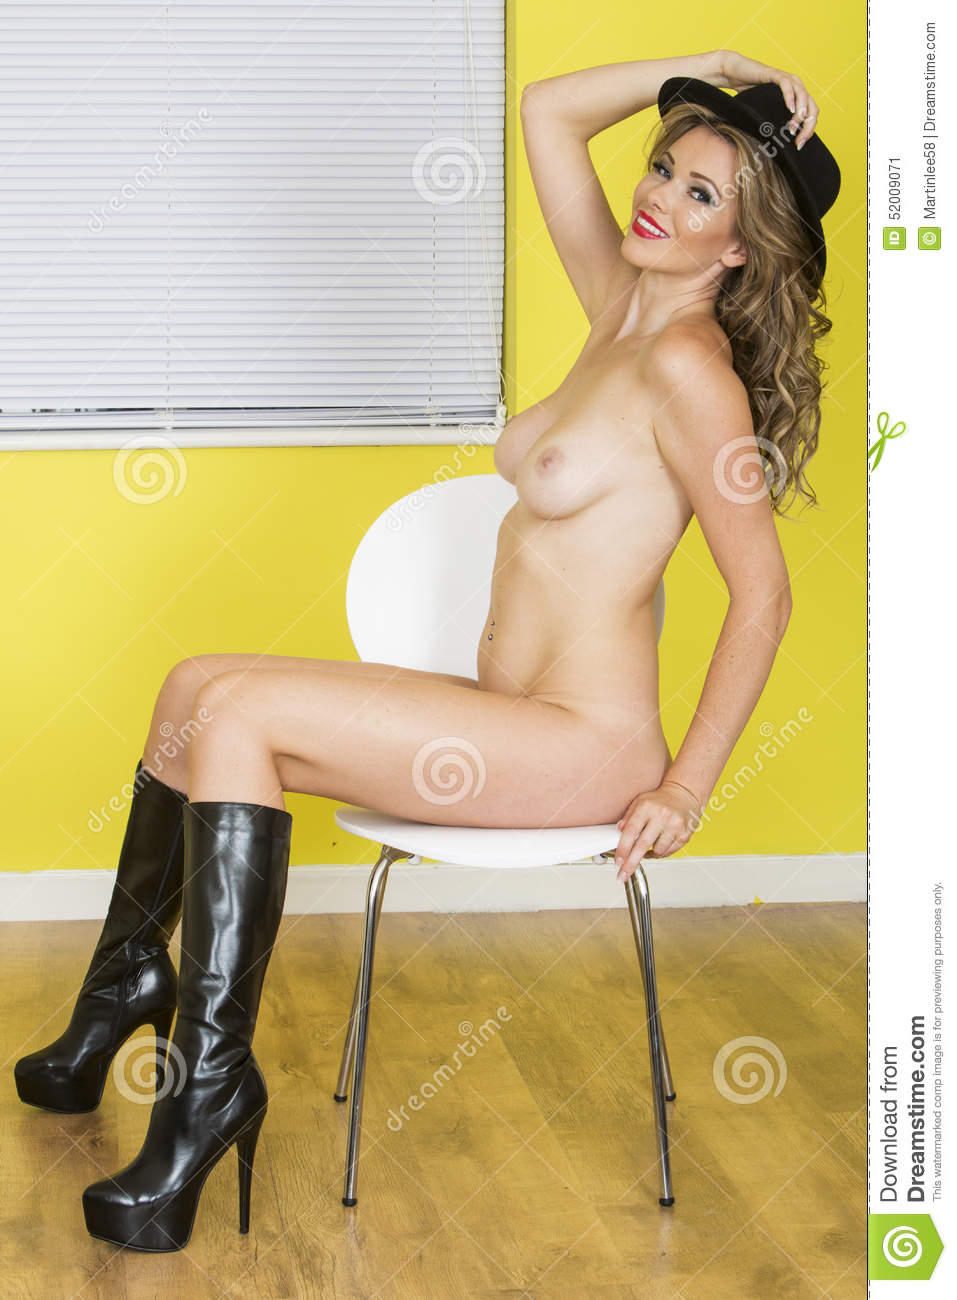 First Time Anal Wearing Boots 110